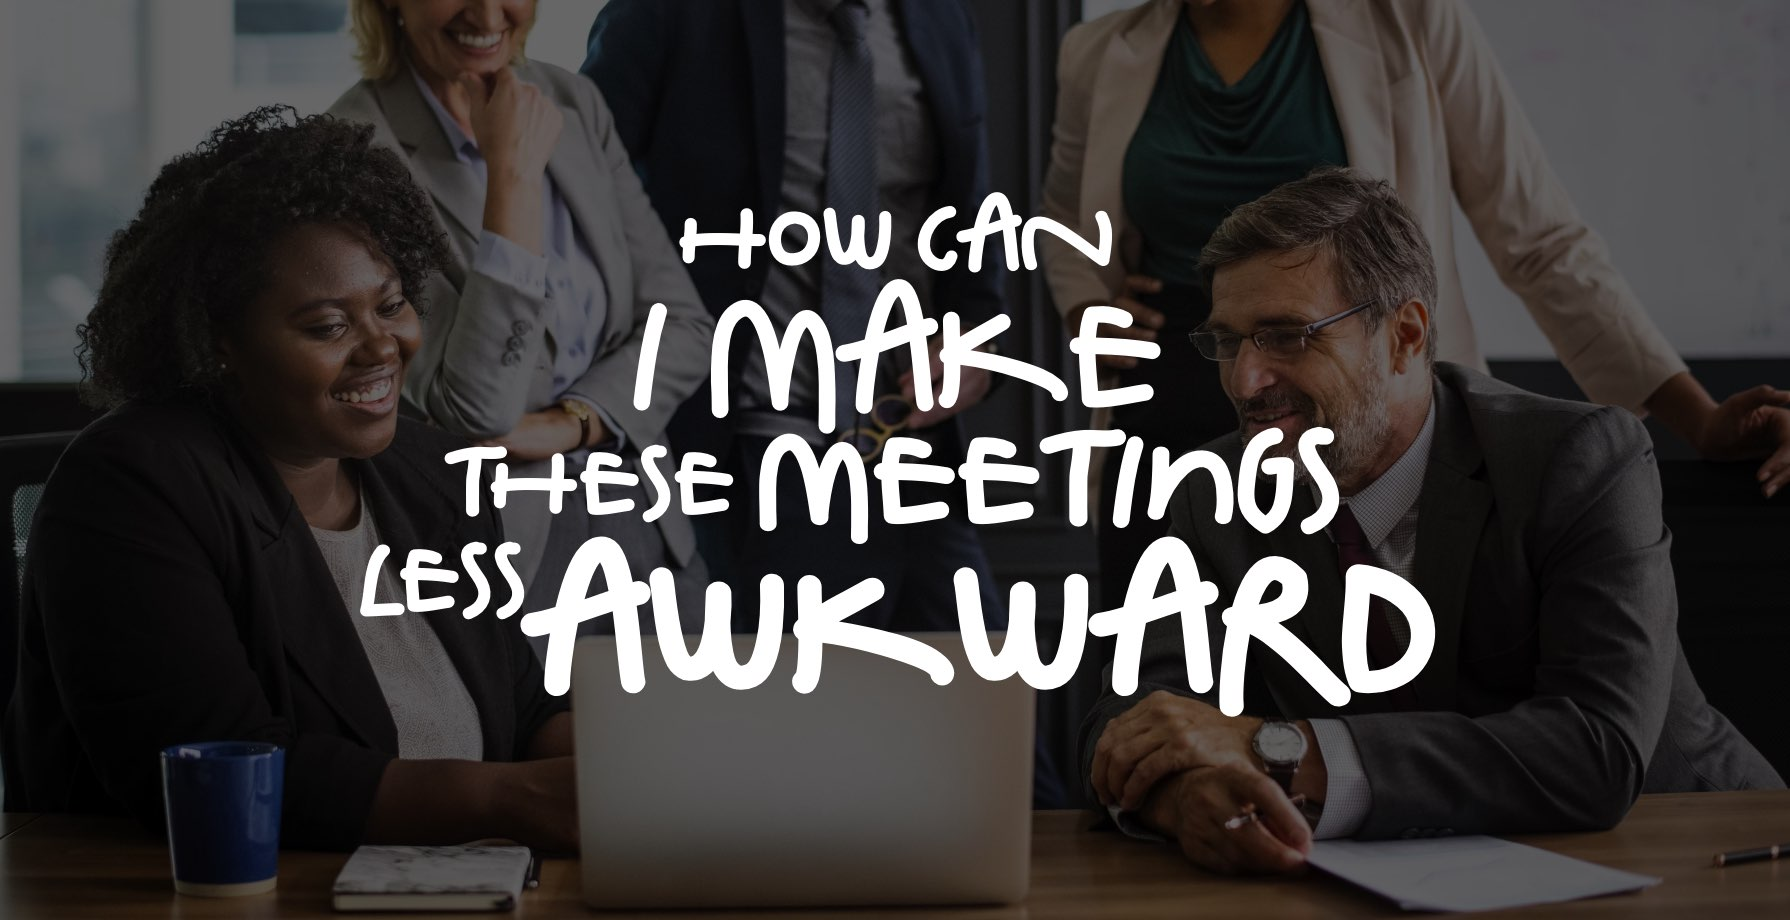 How Can I Make These Meetings Less Awkward 1